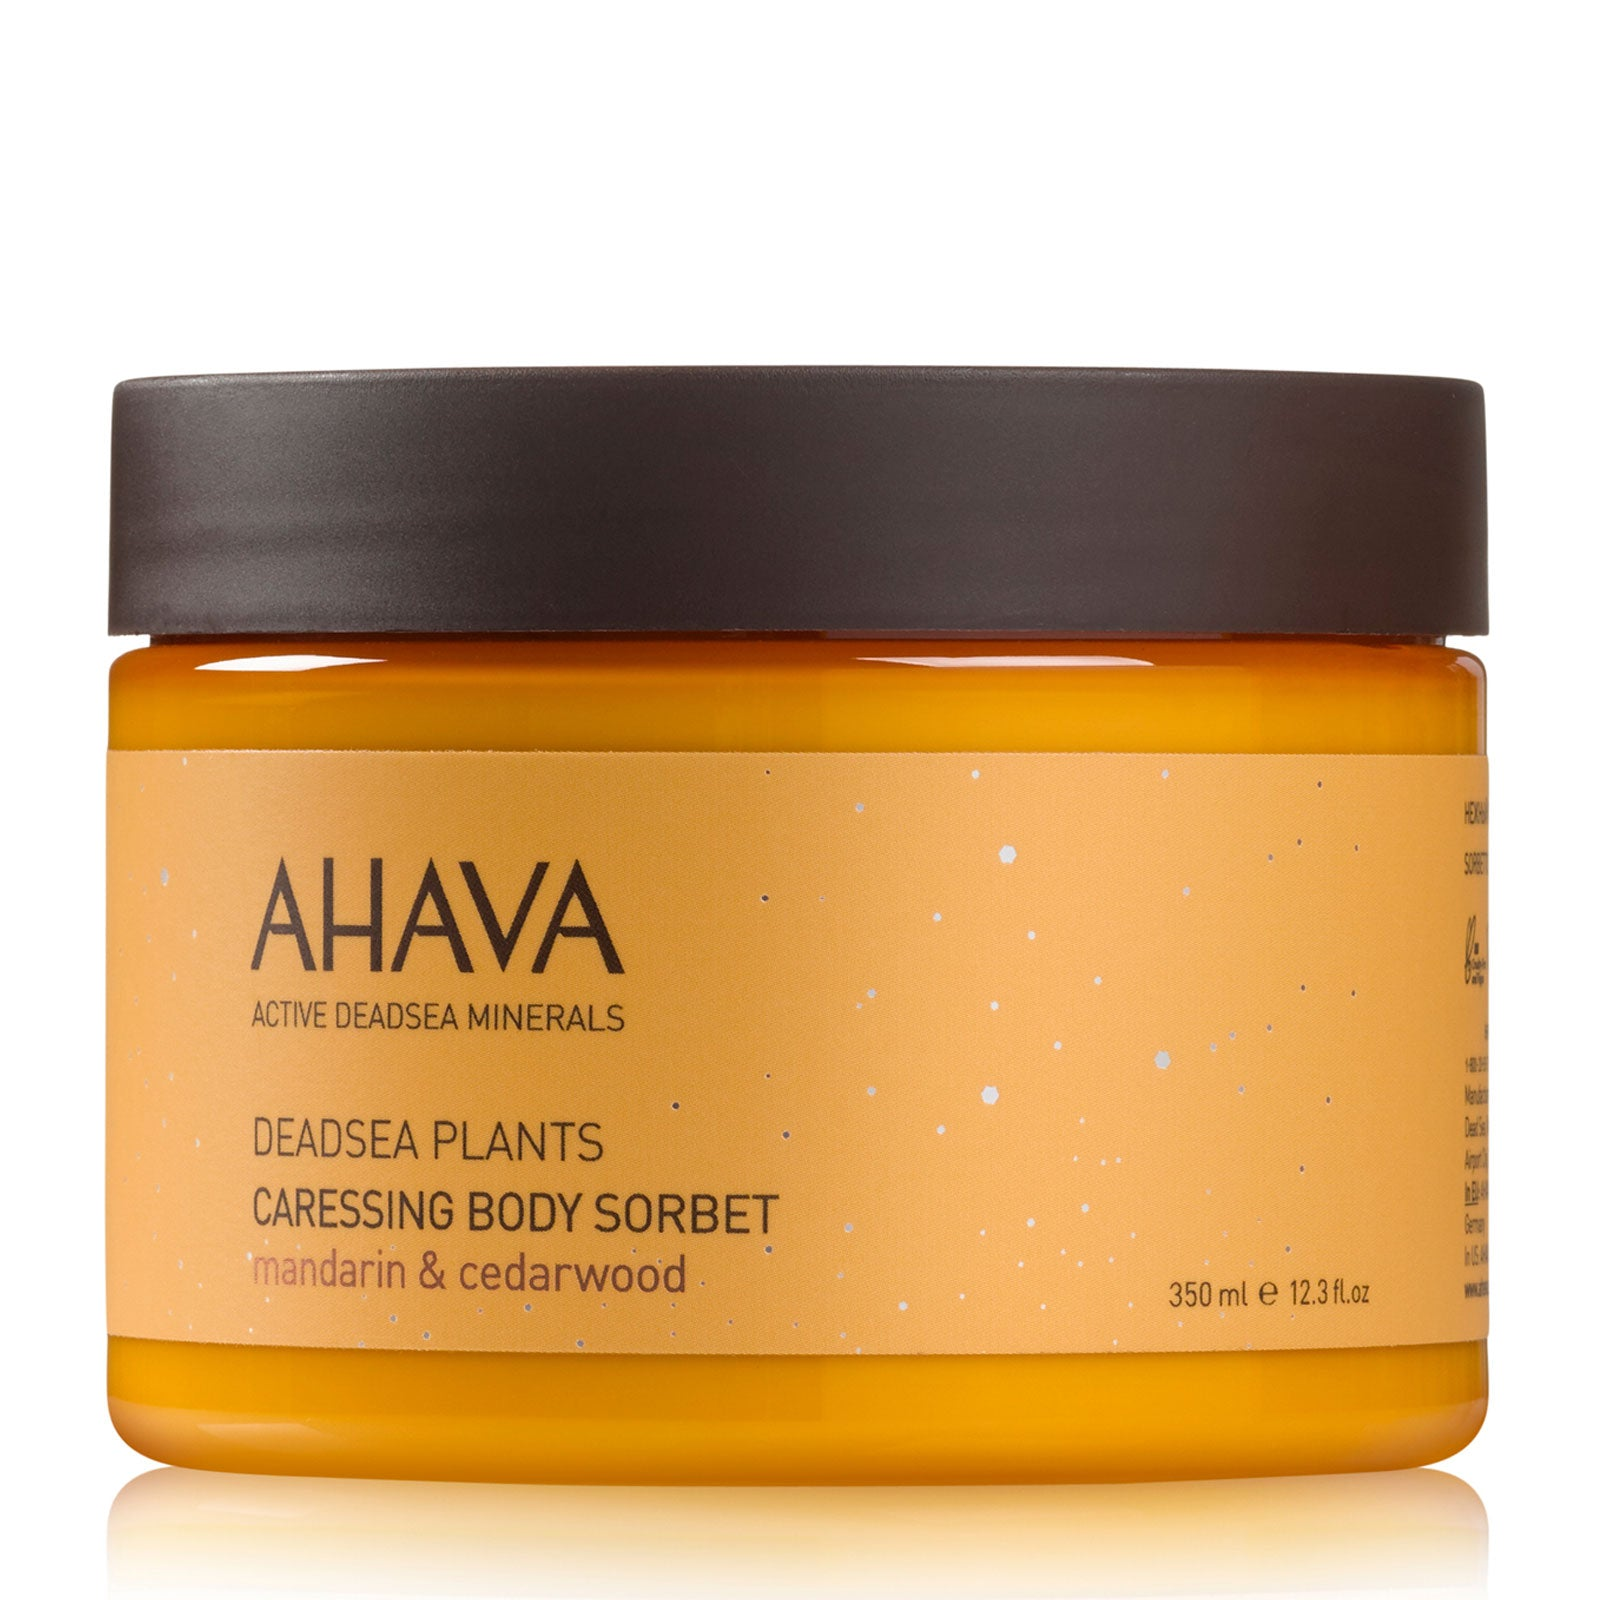 AHAVA Caressing Body Sorbet Mandarine Cedarwood 350ml